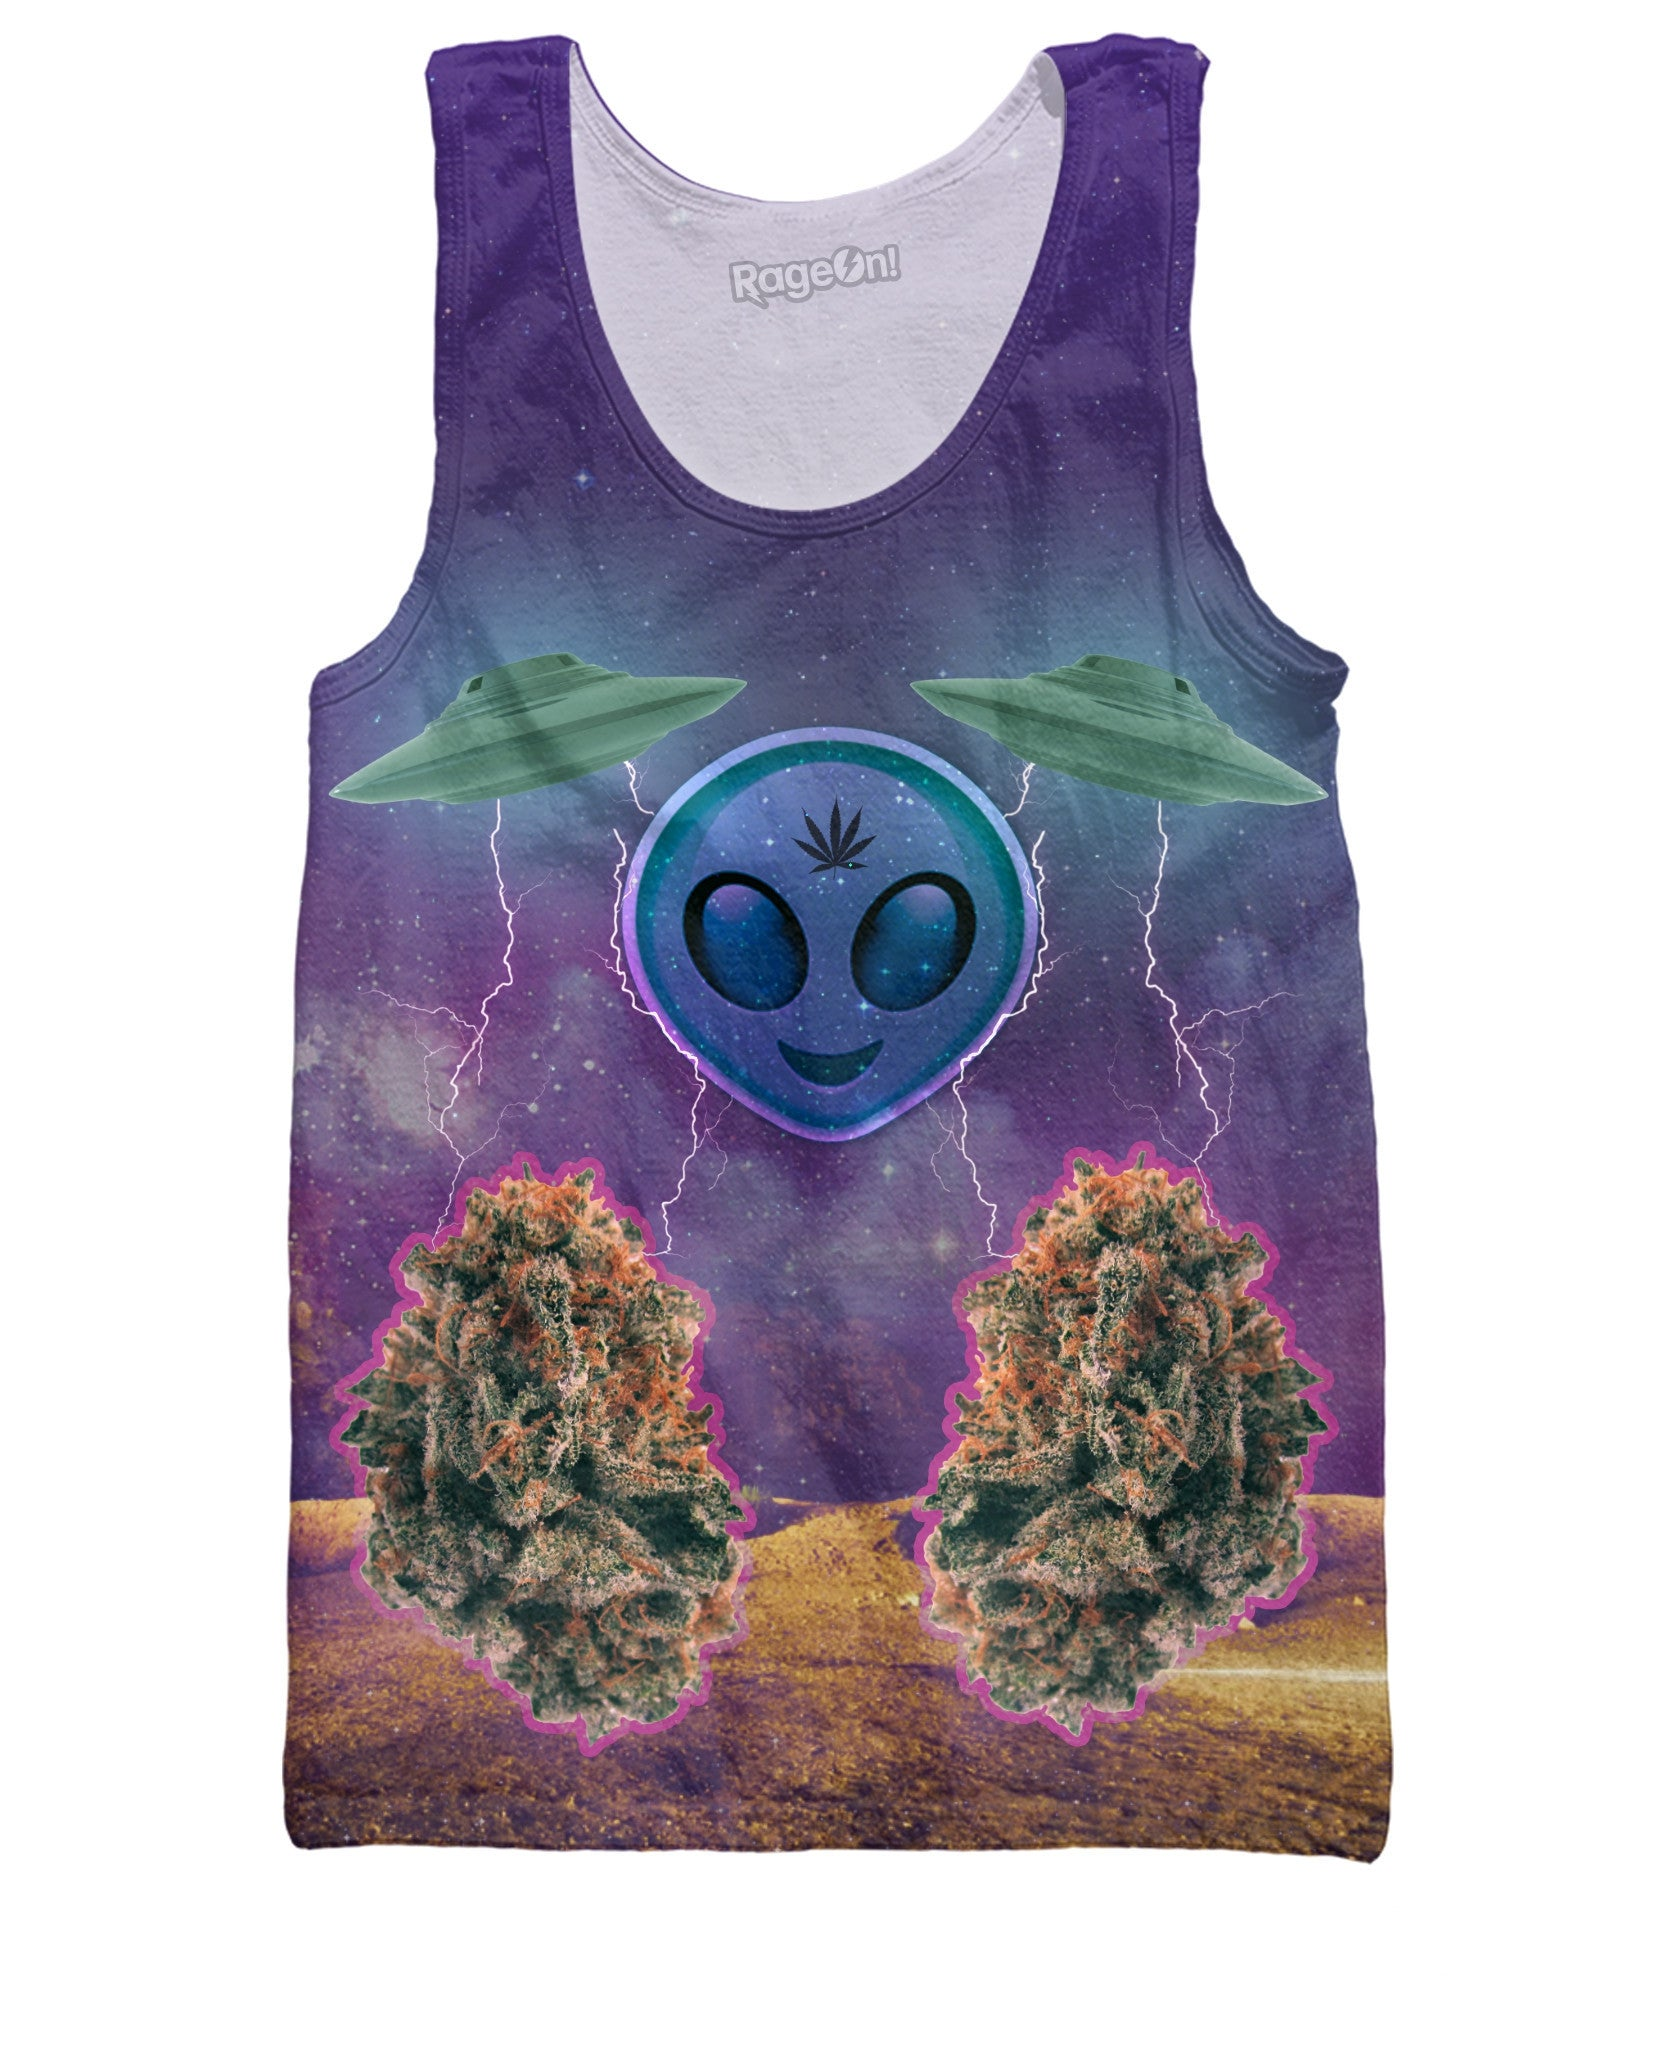 Take Me To Your Dealer Tank Top